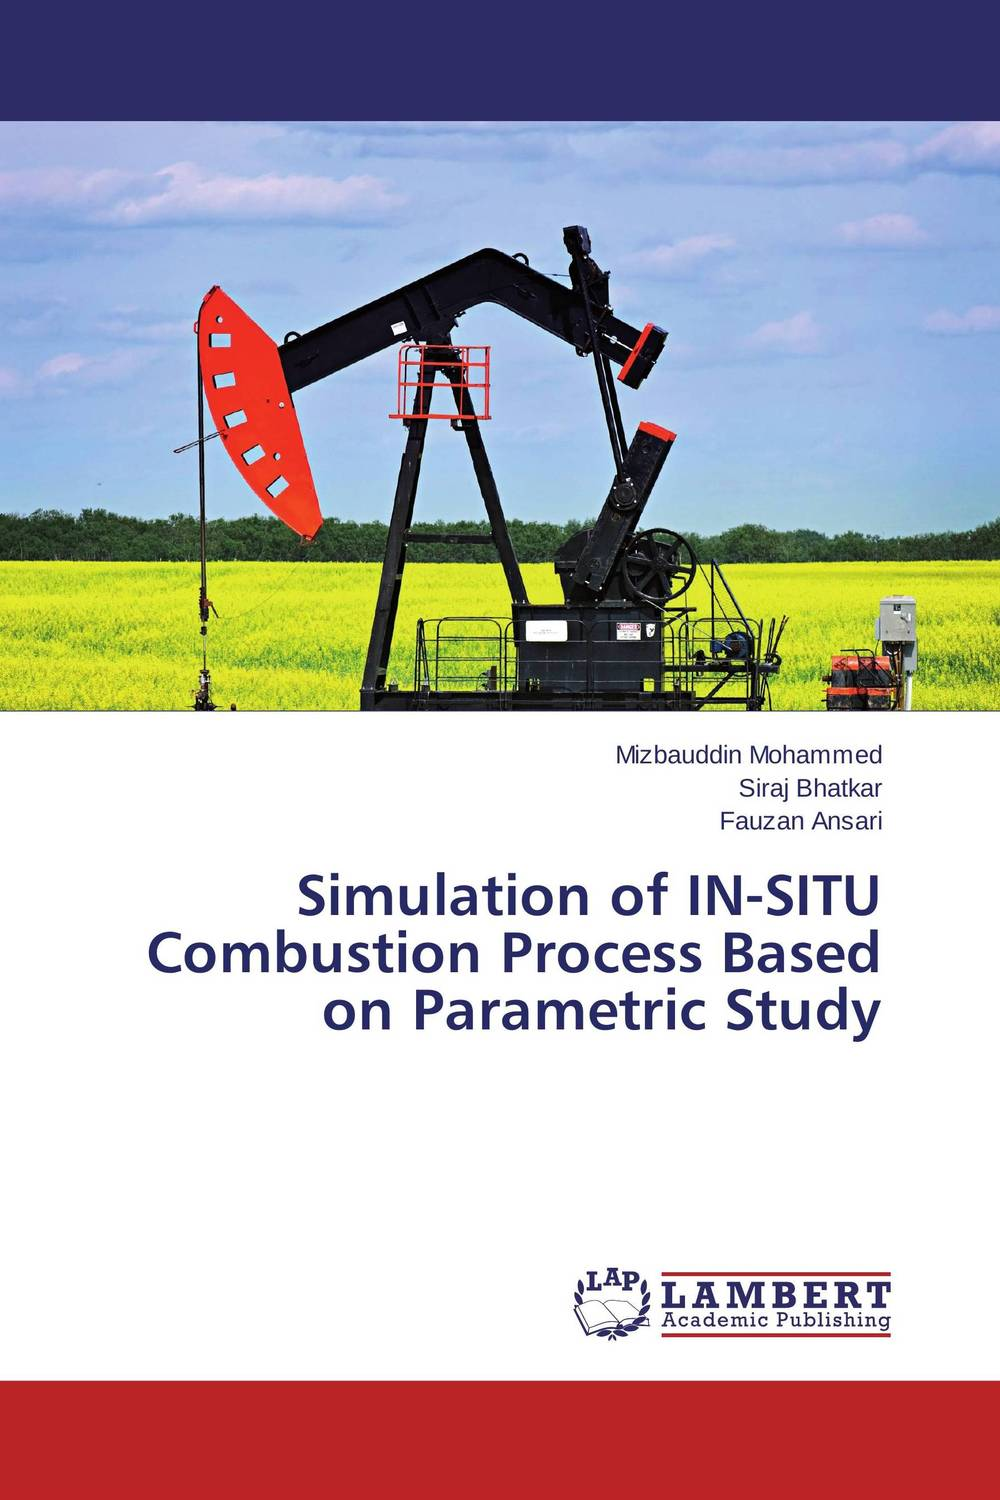 цены Simulation of IN-SITU Combustion Process Based on Parametric Study